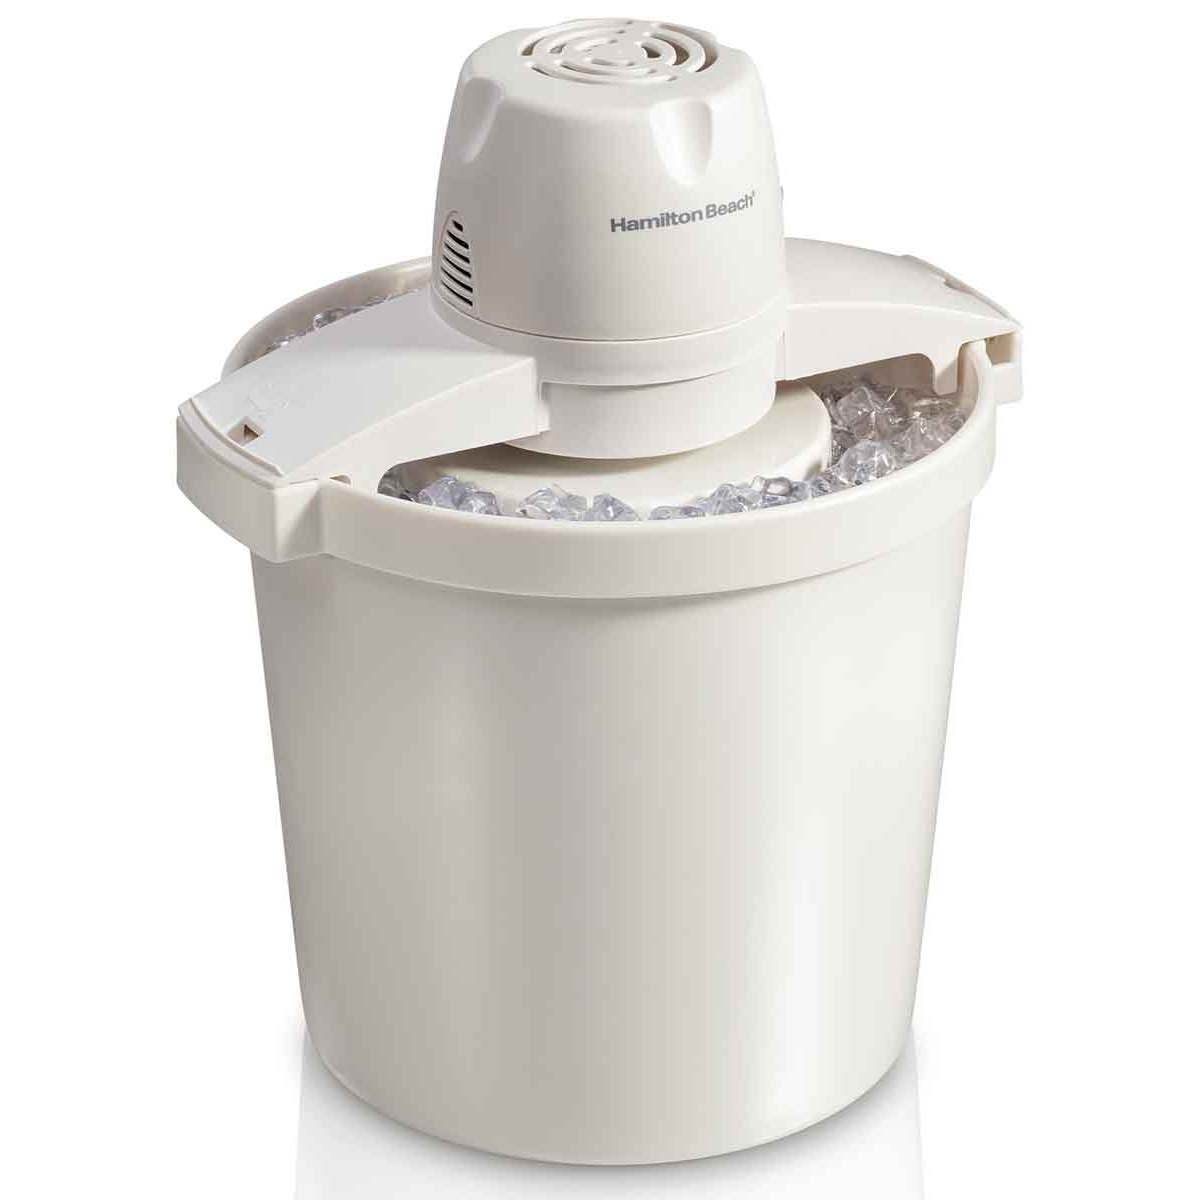 4 Quart Ice Cream Maker (68330N)